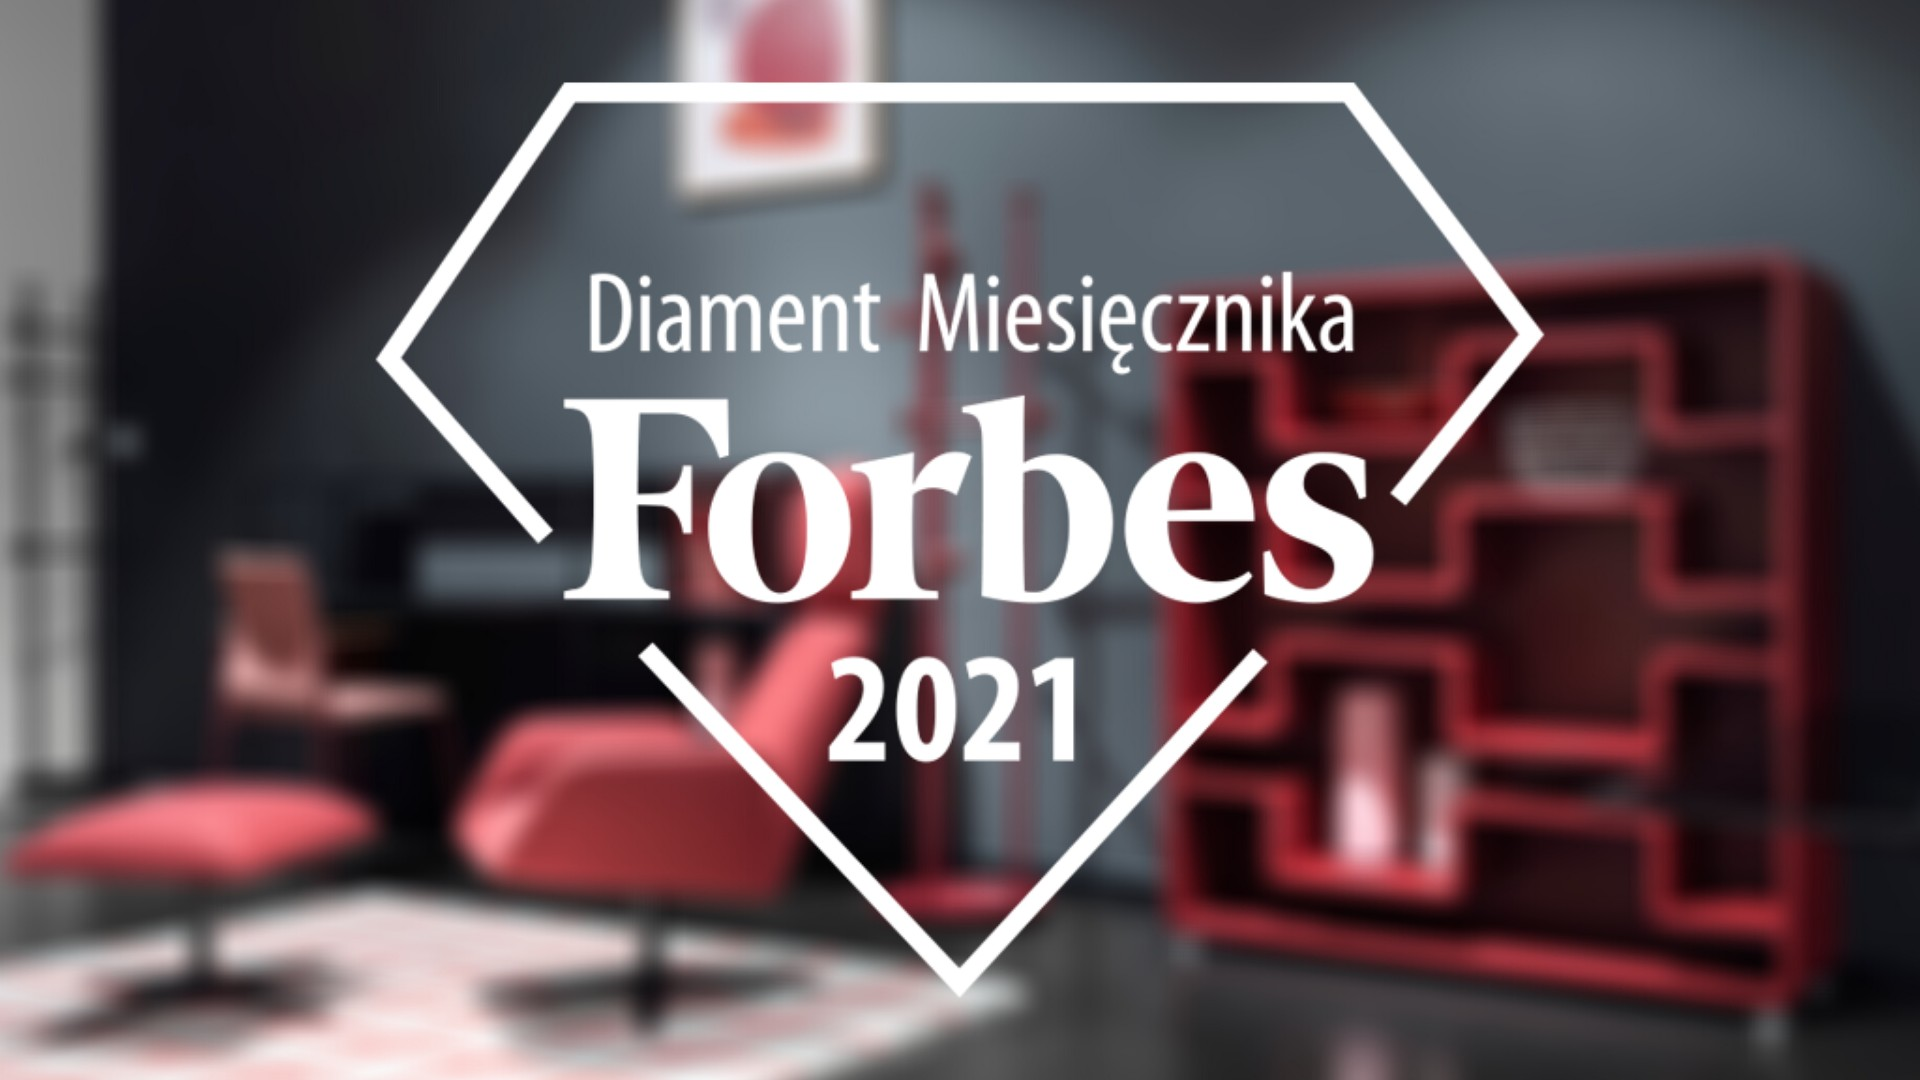 We are in the Forbes Diamonds 2021 ranking!